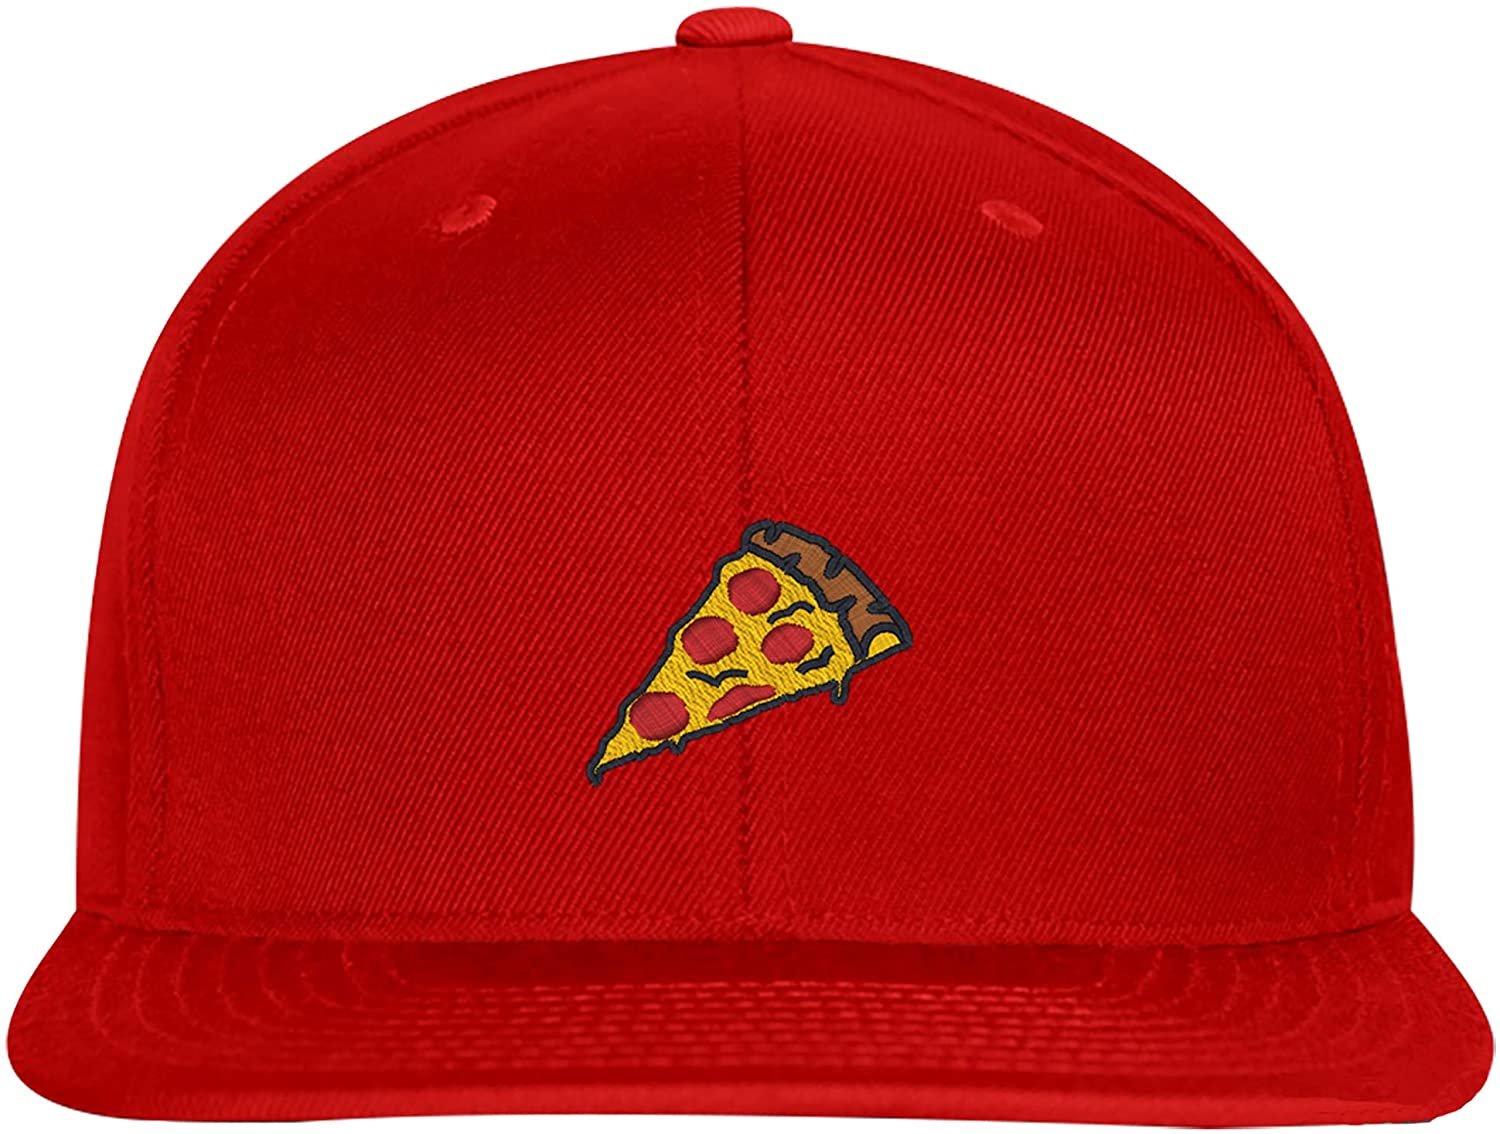 Pizza Slice Pepperoni Embroidery Stitch, Snapback Hat